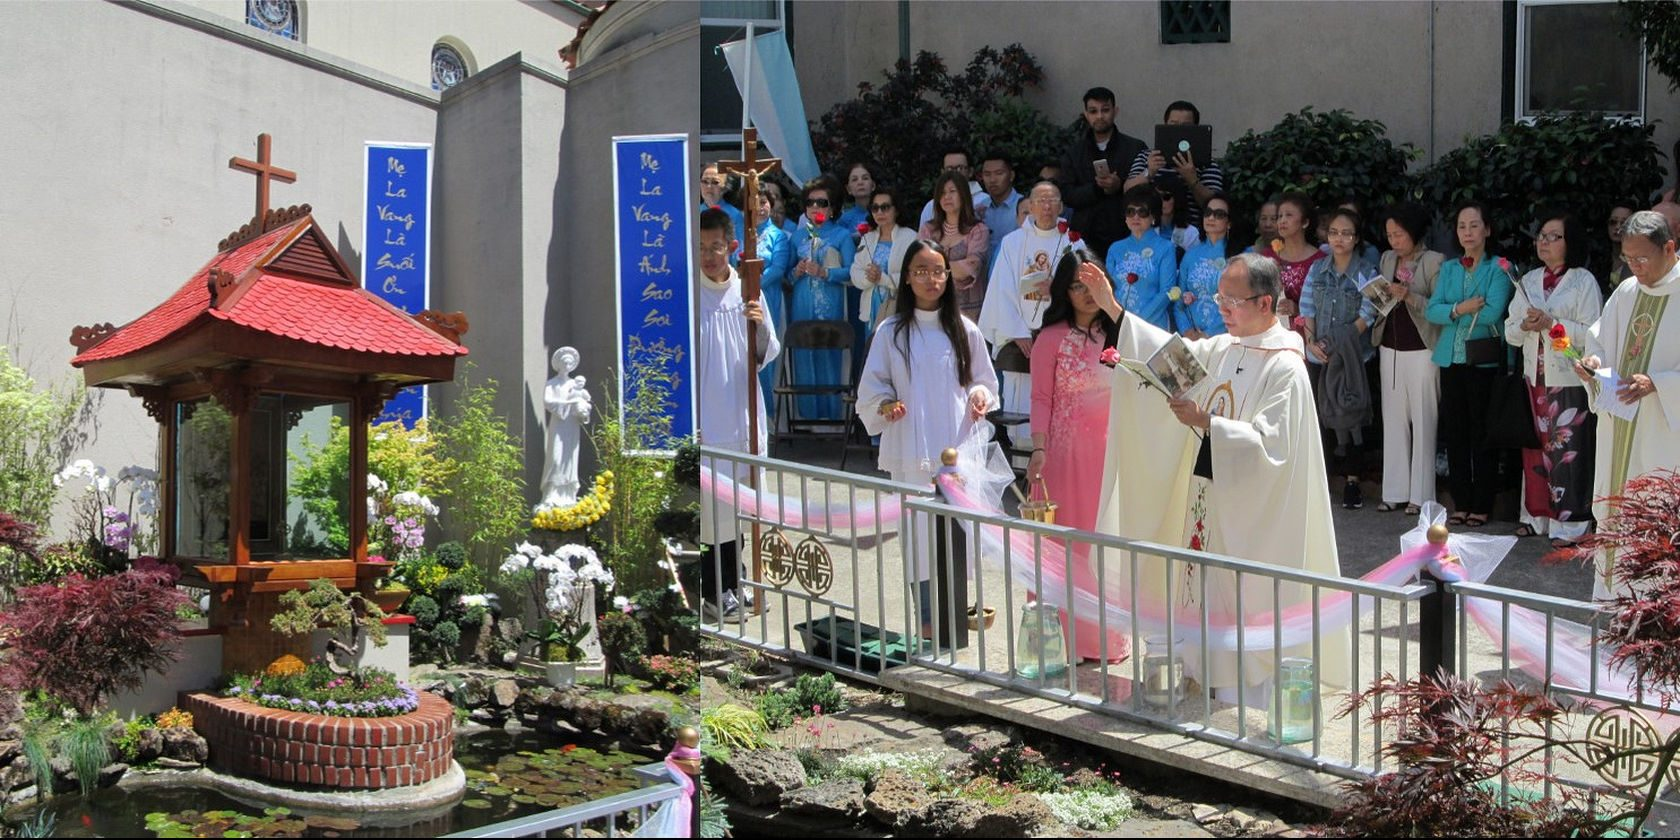 Dedication of Our Lady of La Vang